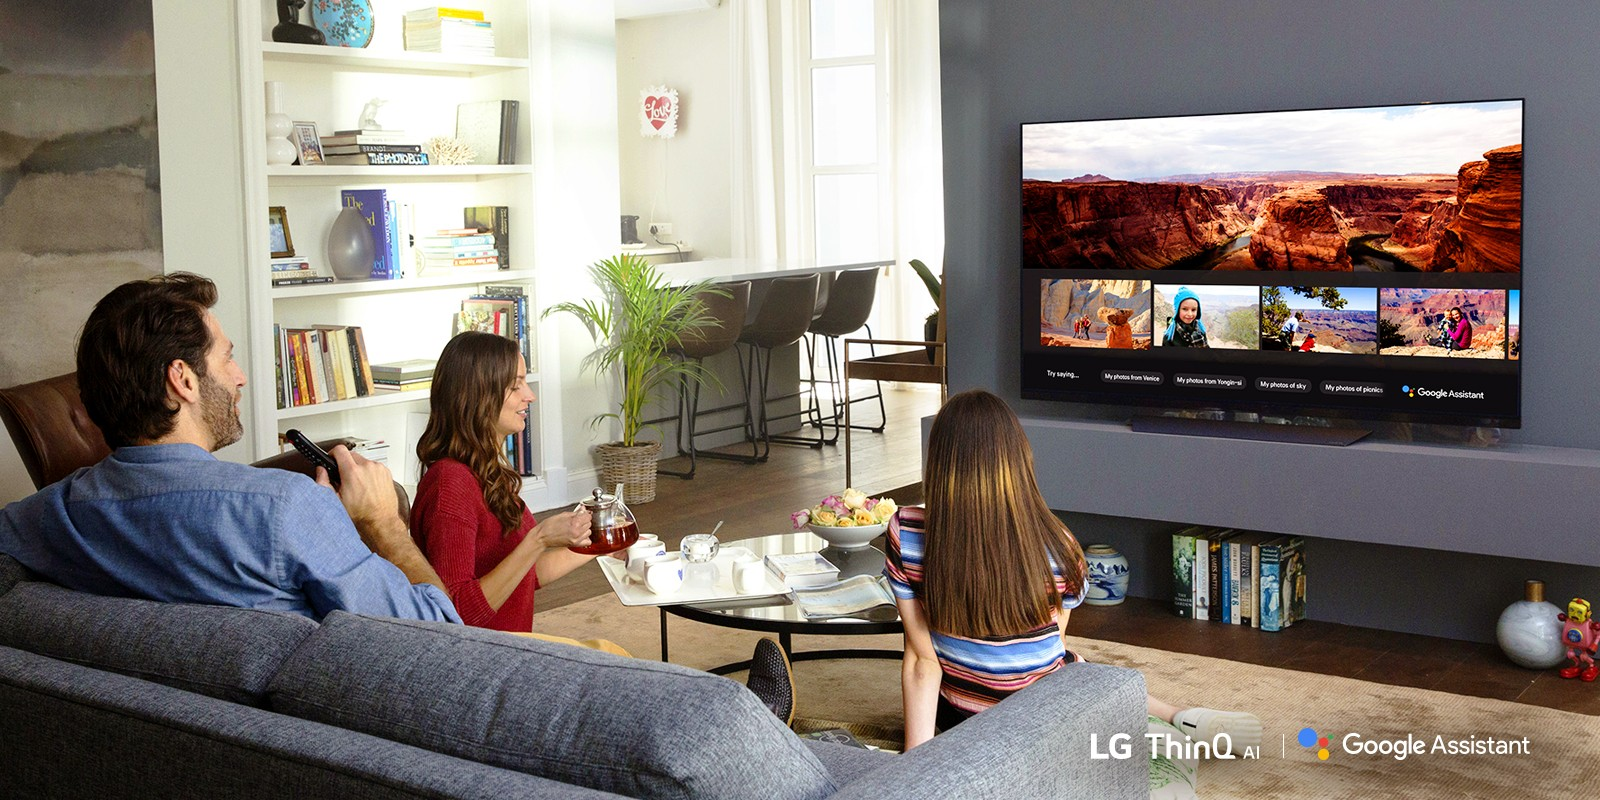 A family watching an LG TV using Google Assistant in their living room